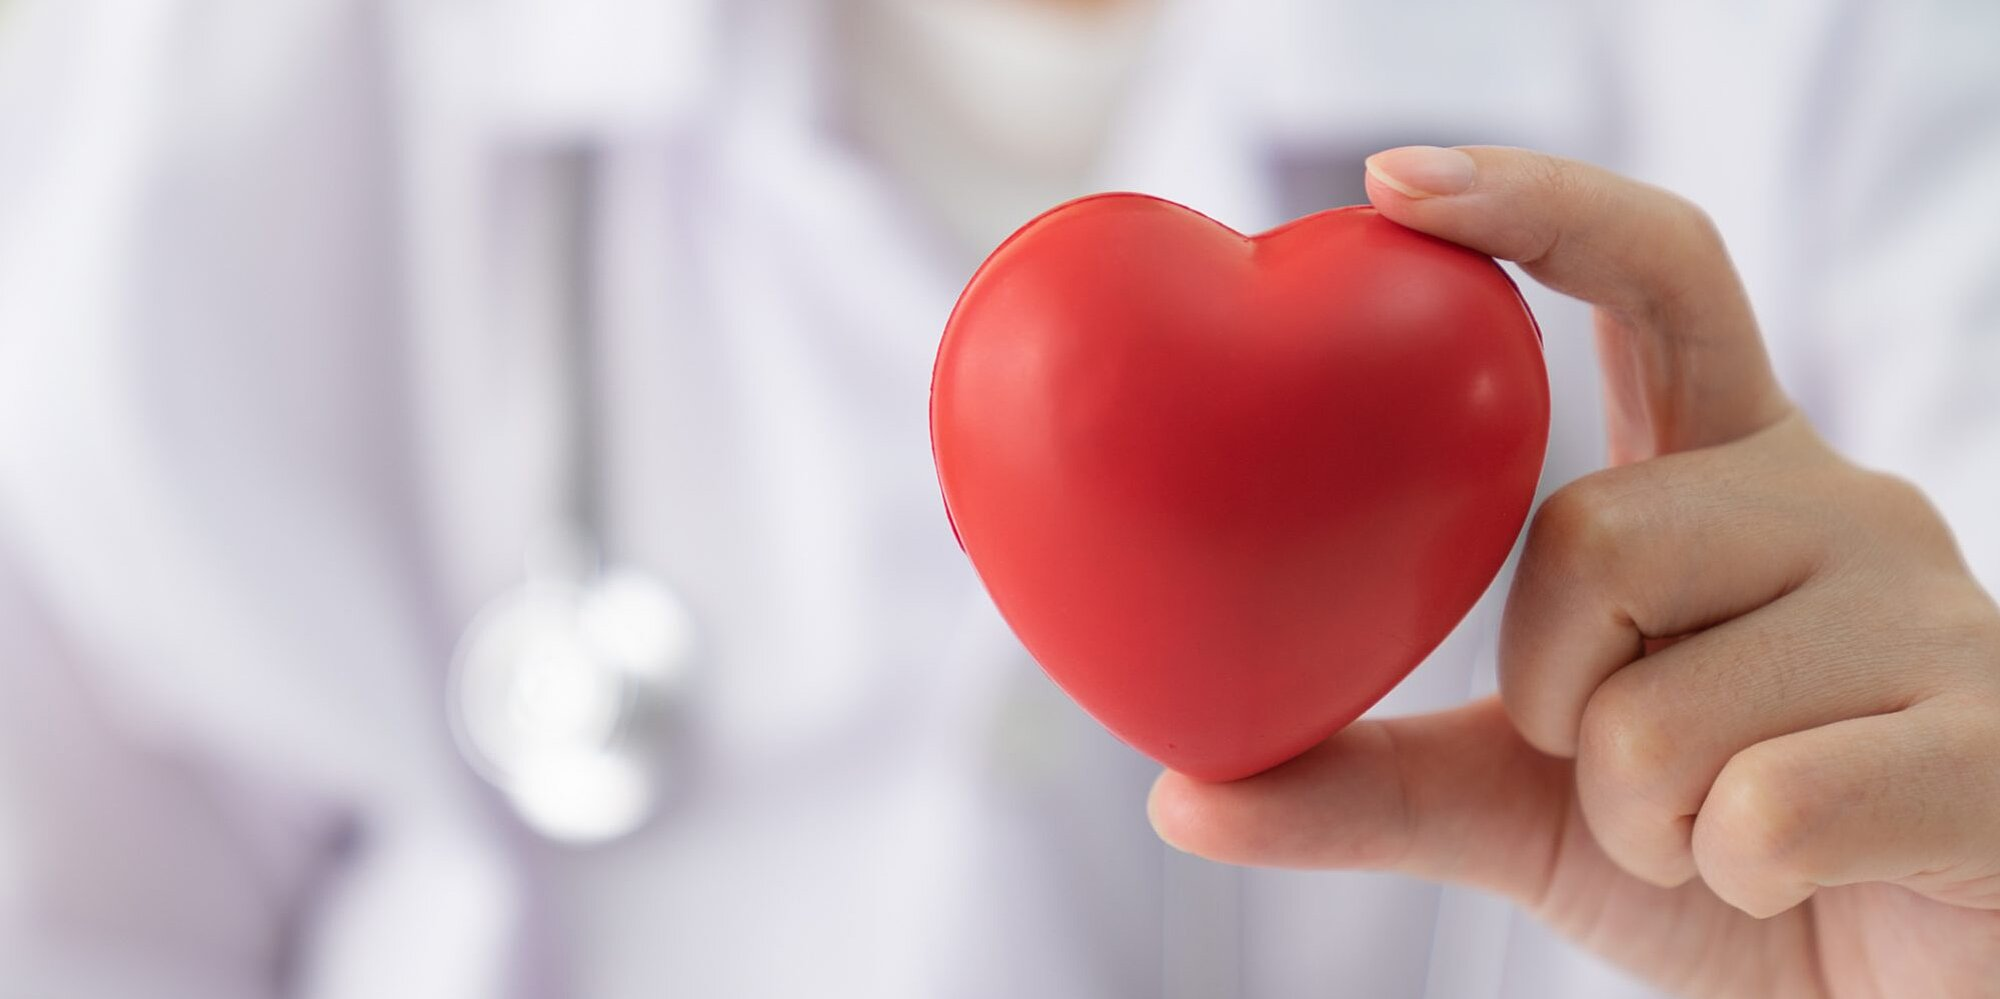 5 Tips for a Heart-Healthy, Cholesterol-Smart Diet